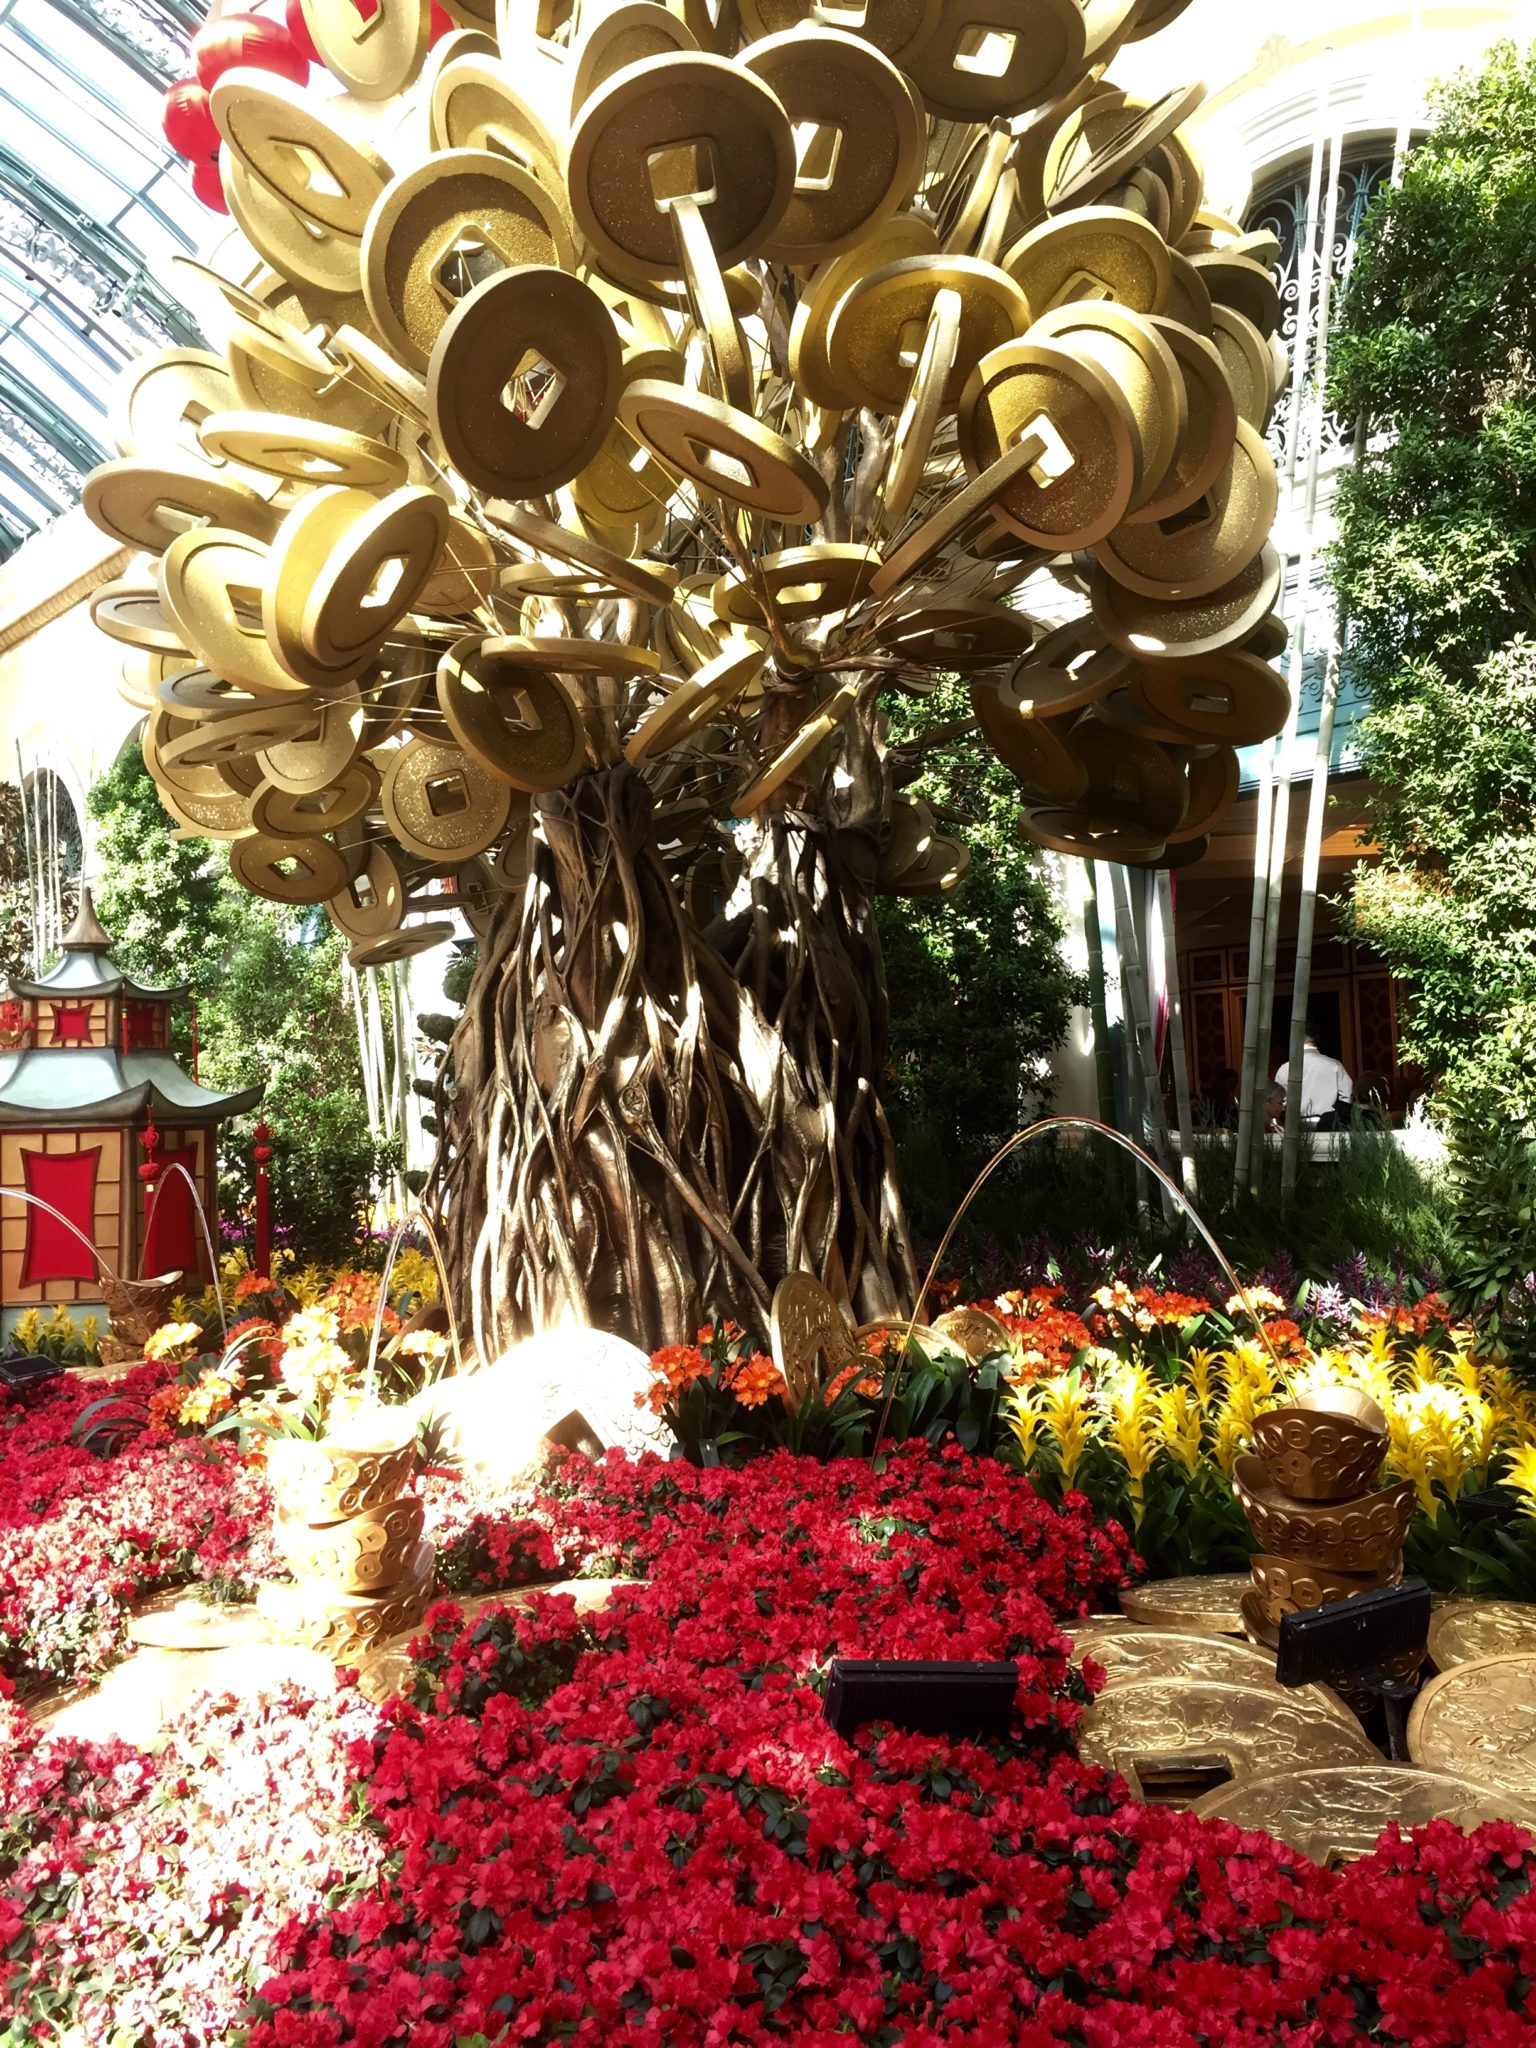 Flowers and Gardens – Las Vegas